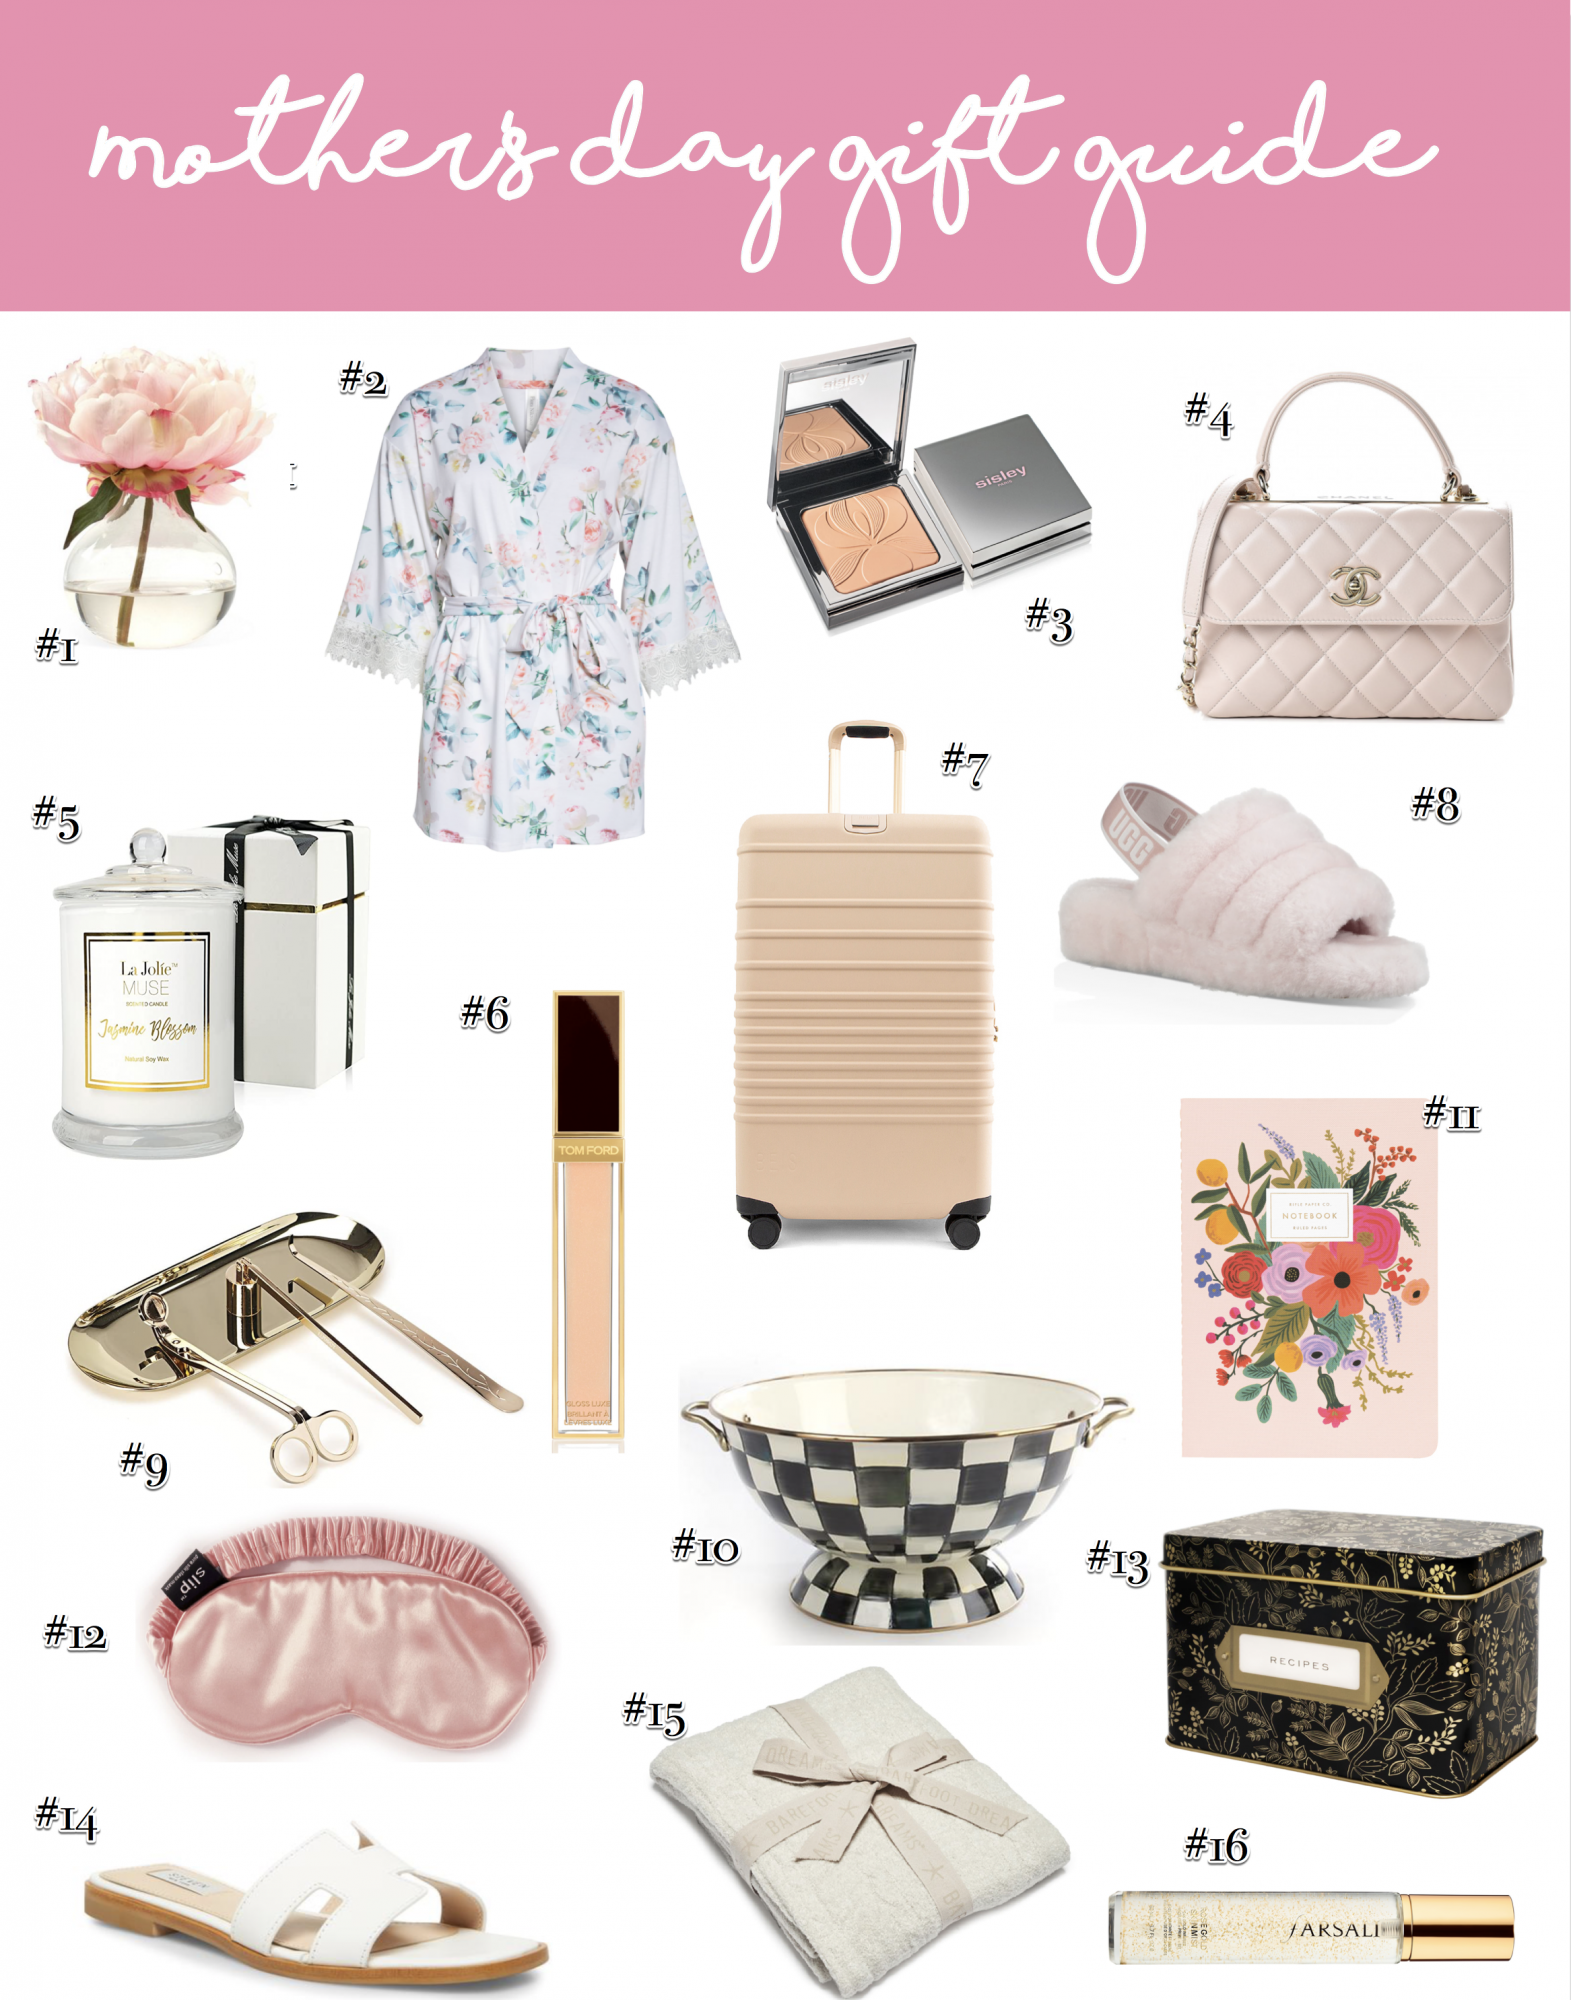 Mother's day gift guide, gifts for mom, Mother's Day wish list | Mother's Day Gift Ideas by popular US life and style blog, The Sweetest Thing: collage image of Faux Peony in Vase, Floral Print Robe, Sisley Blur Powder, Chanel Bag, Jasmine Candle, Tom Ford Gloss Luxe Lip Gloss, BEIS Luggage, UGG Slippers, Candle Accessory Set, MacKenzie Childs Enamel Bowl, Garden Party Notebook Set, SLIP Pure Silk Sleep Mask,Rifle Paper Co. Tin Recipe Box, Steve Madden White Leather Sandals, Barefoot Dreams Throw Blanket, and Farsali Rose Gold 24K Skin Mist